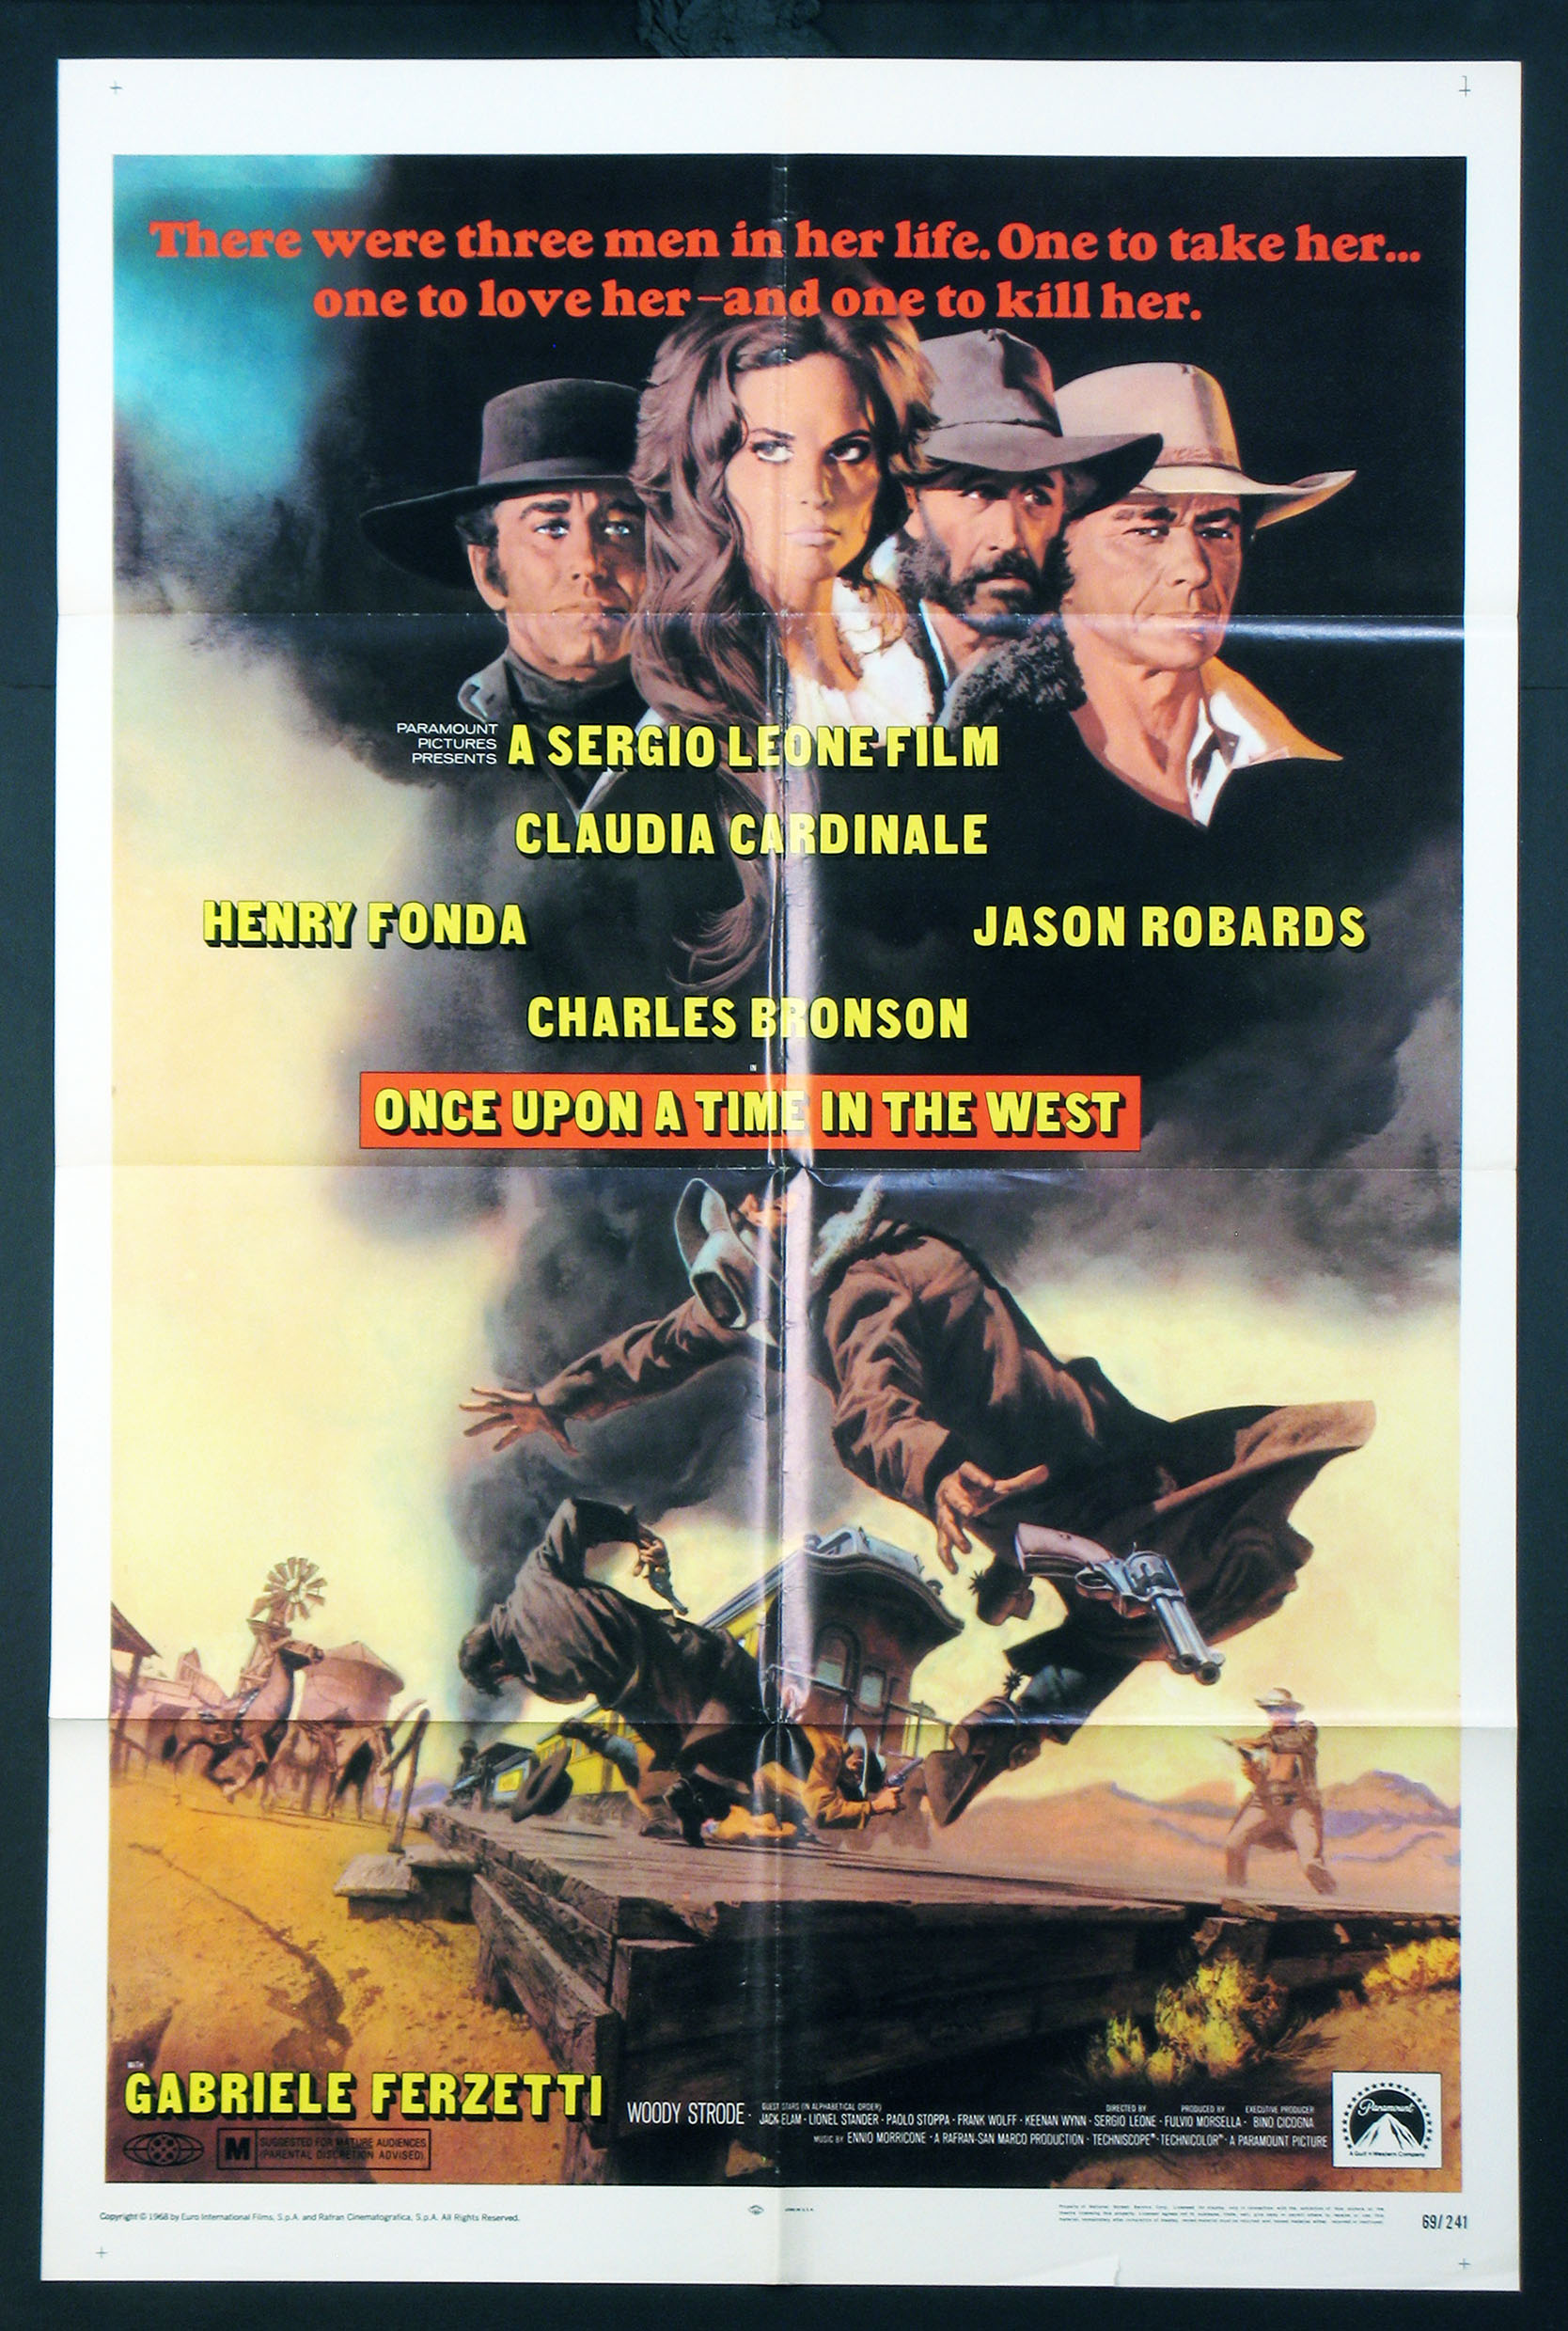 ONCE UPON A TIME IN THE WEST @ FilmPosters.com